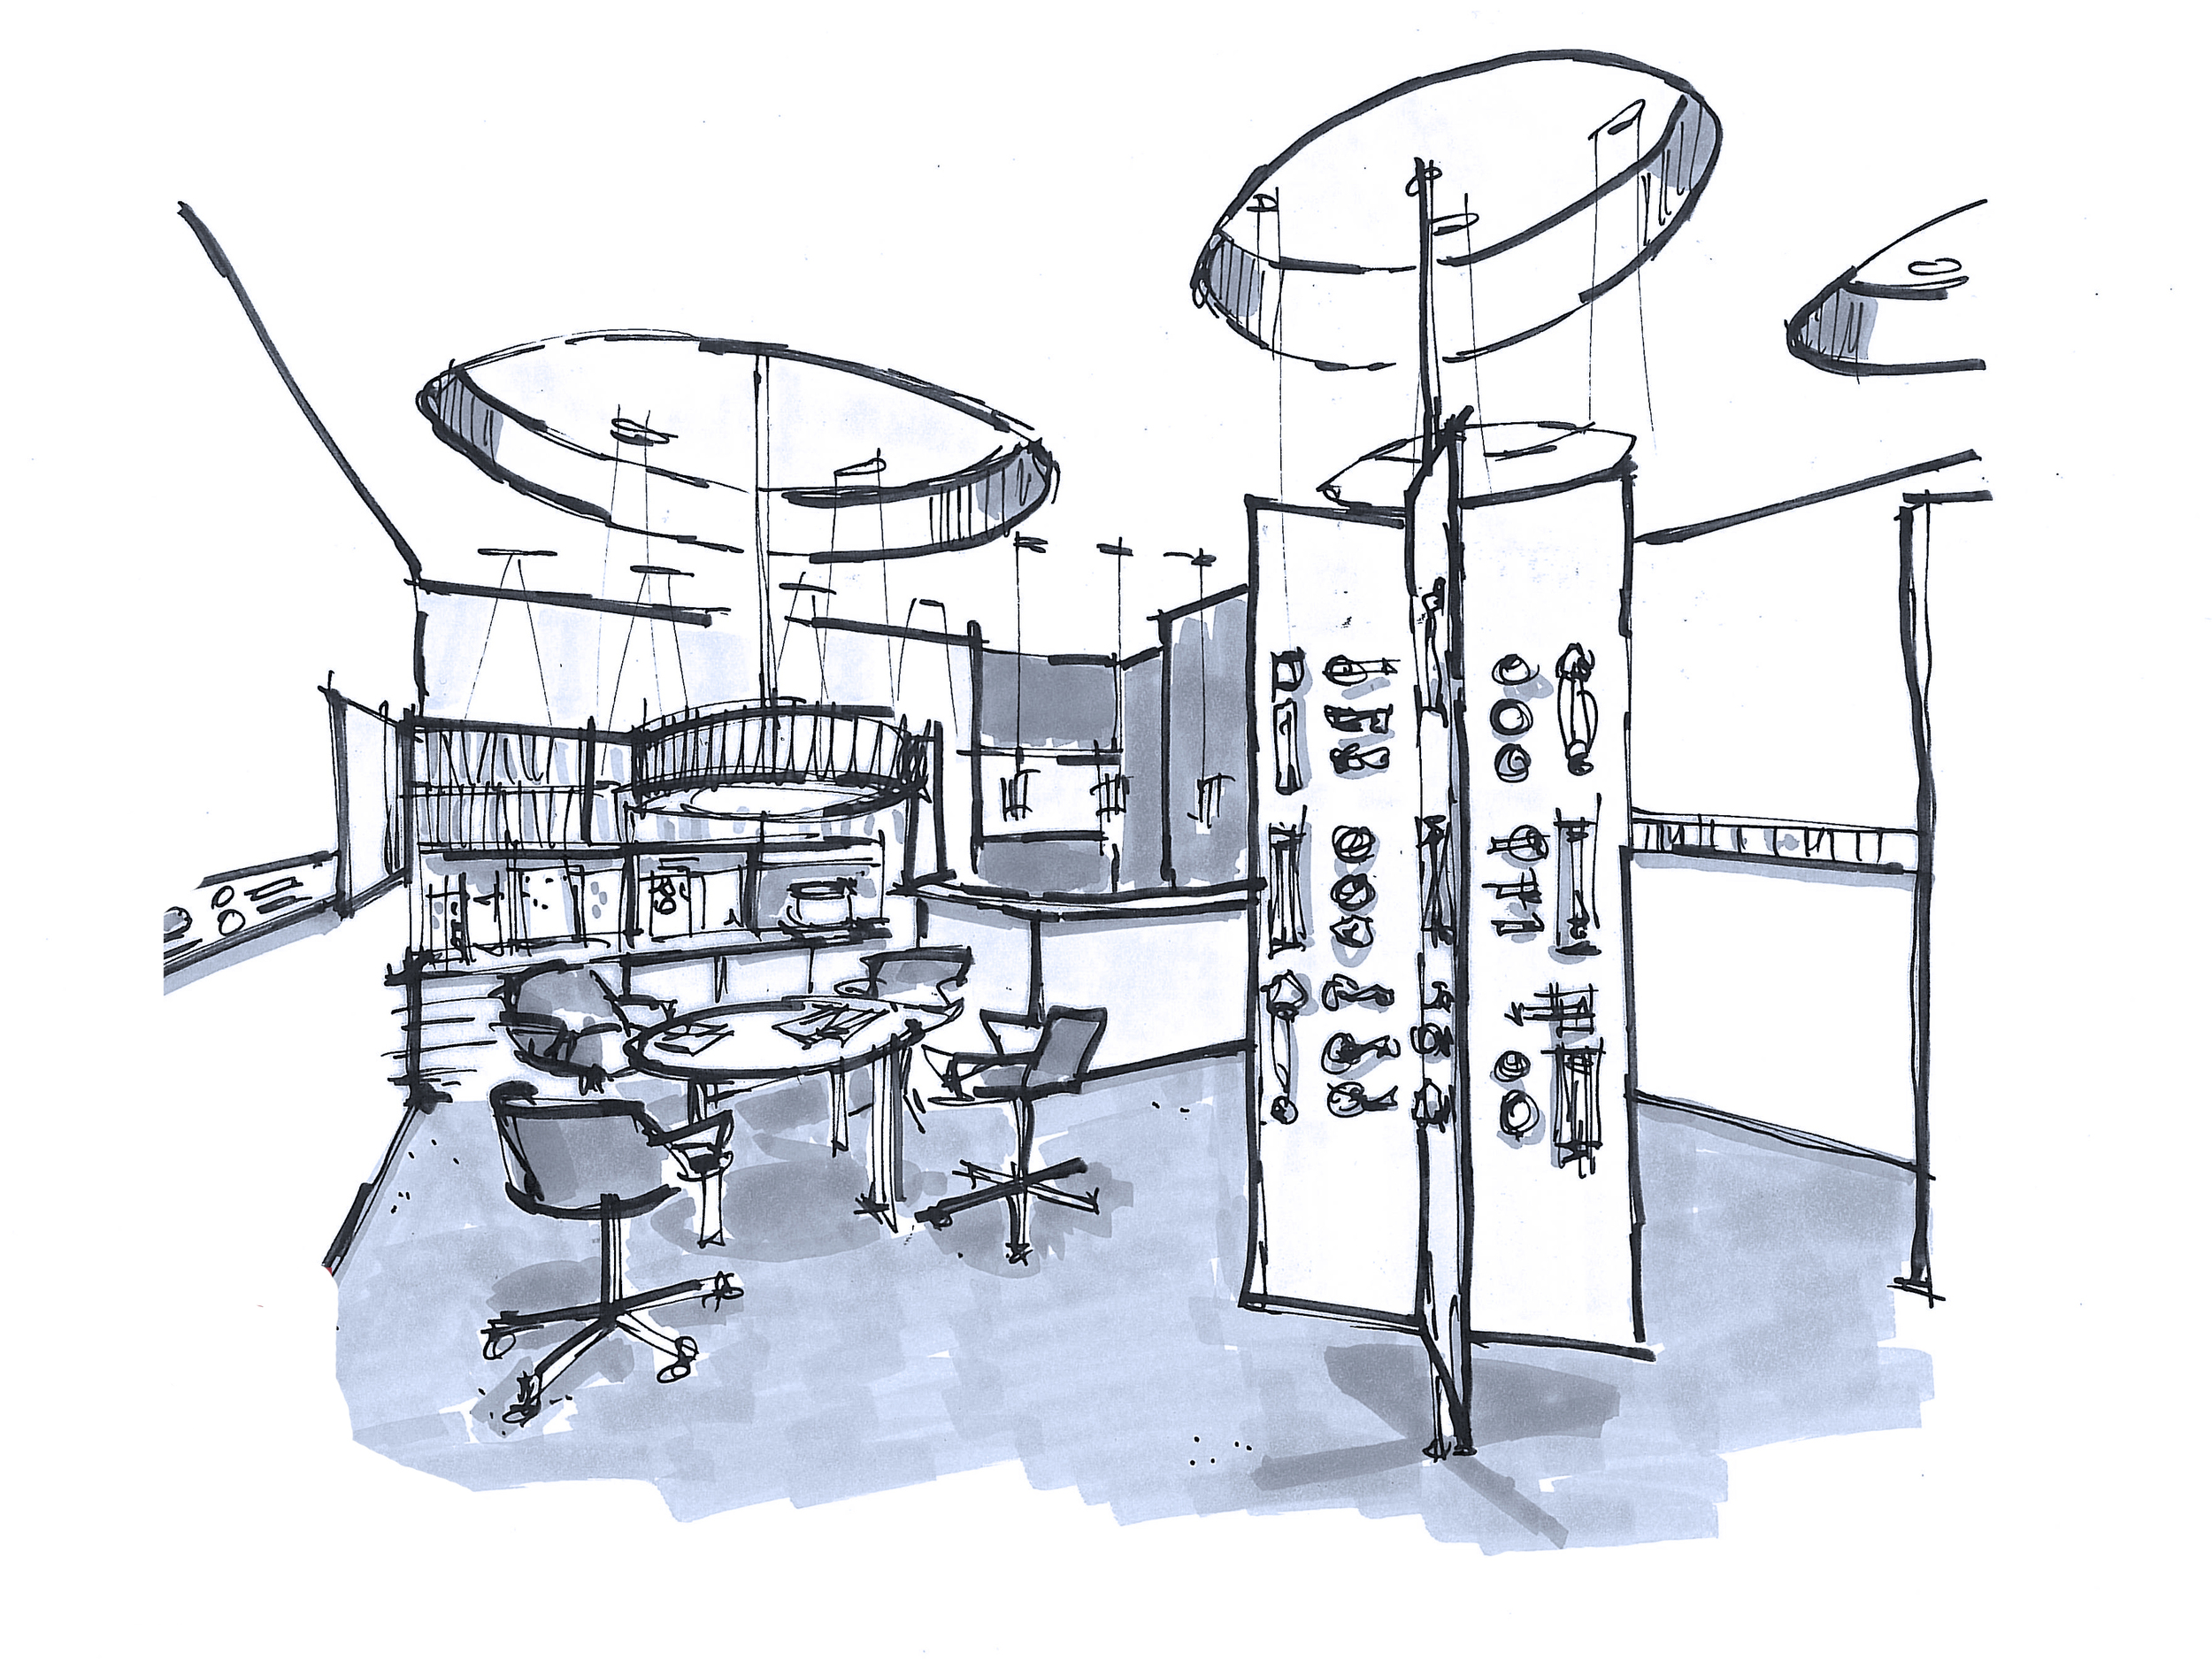 Retail Product Display and Space Plan